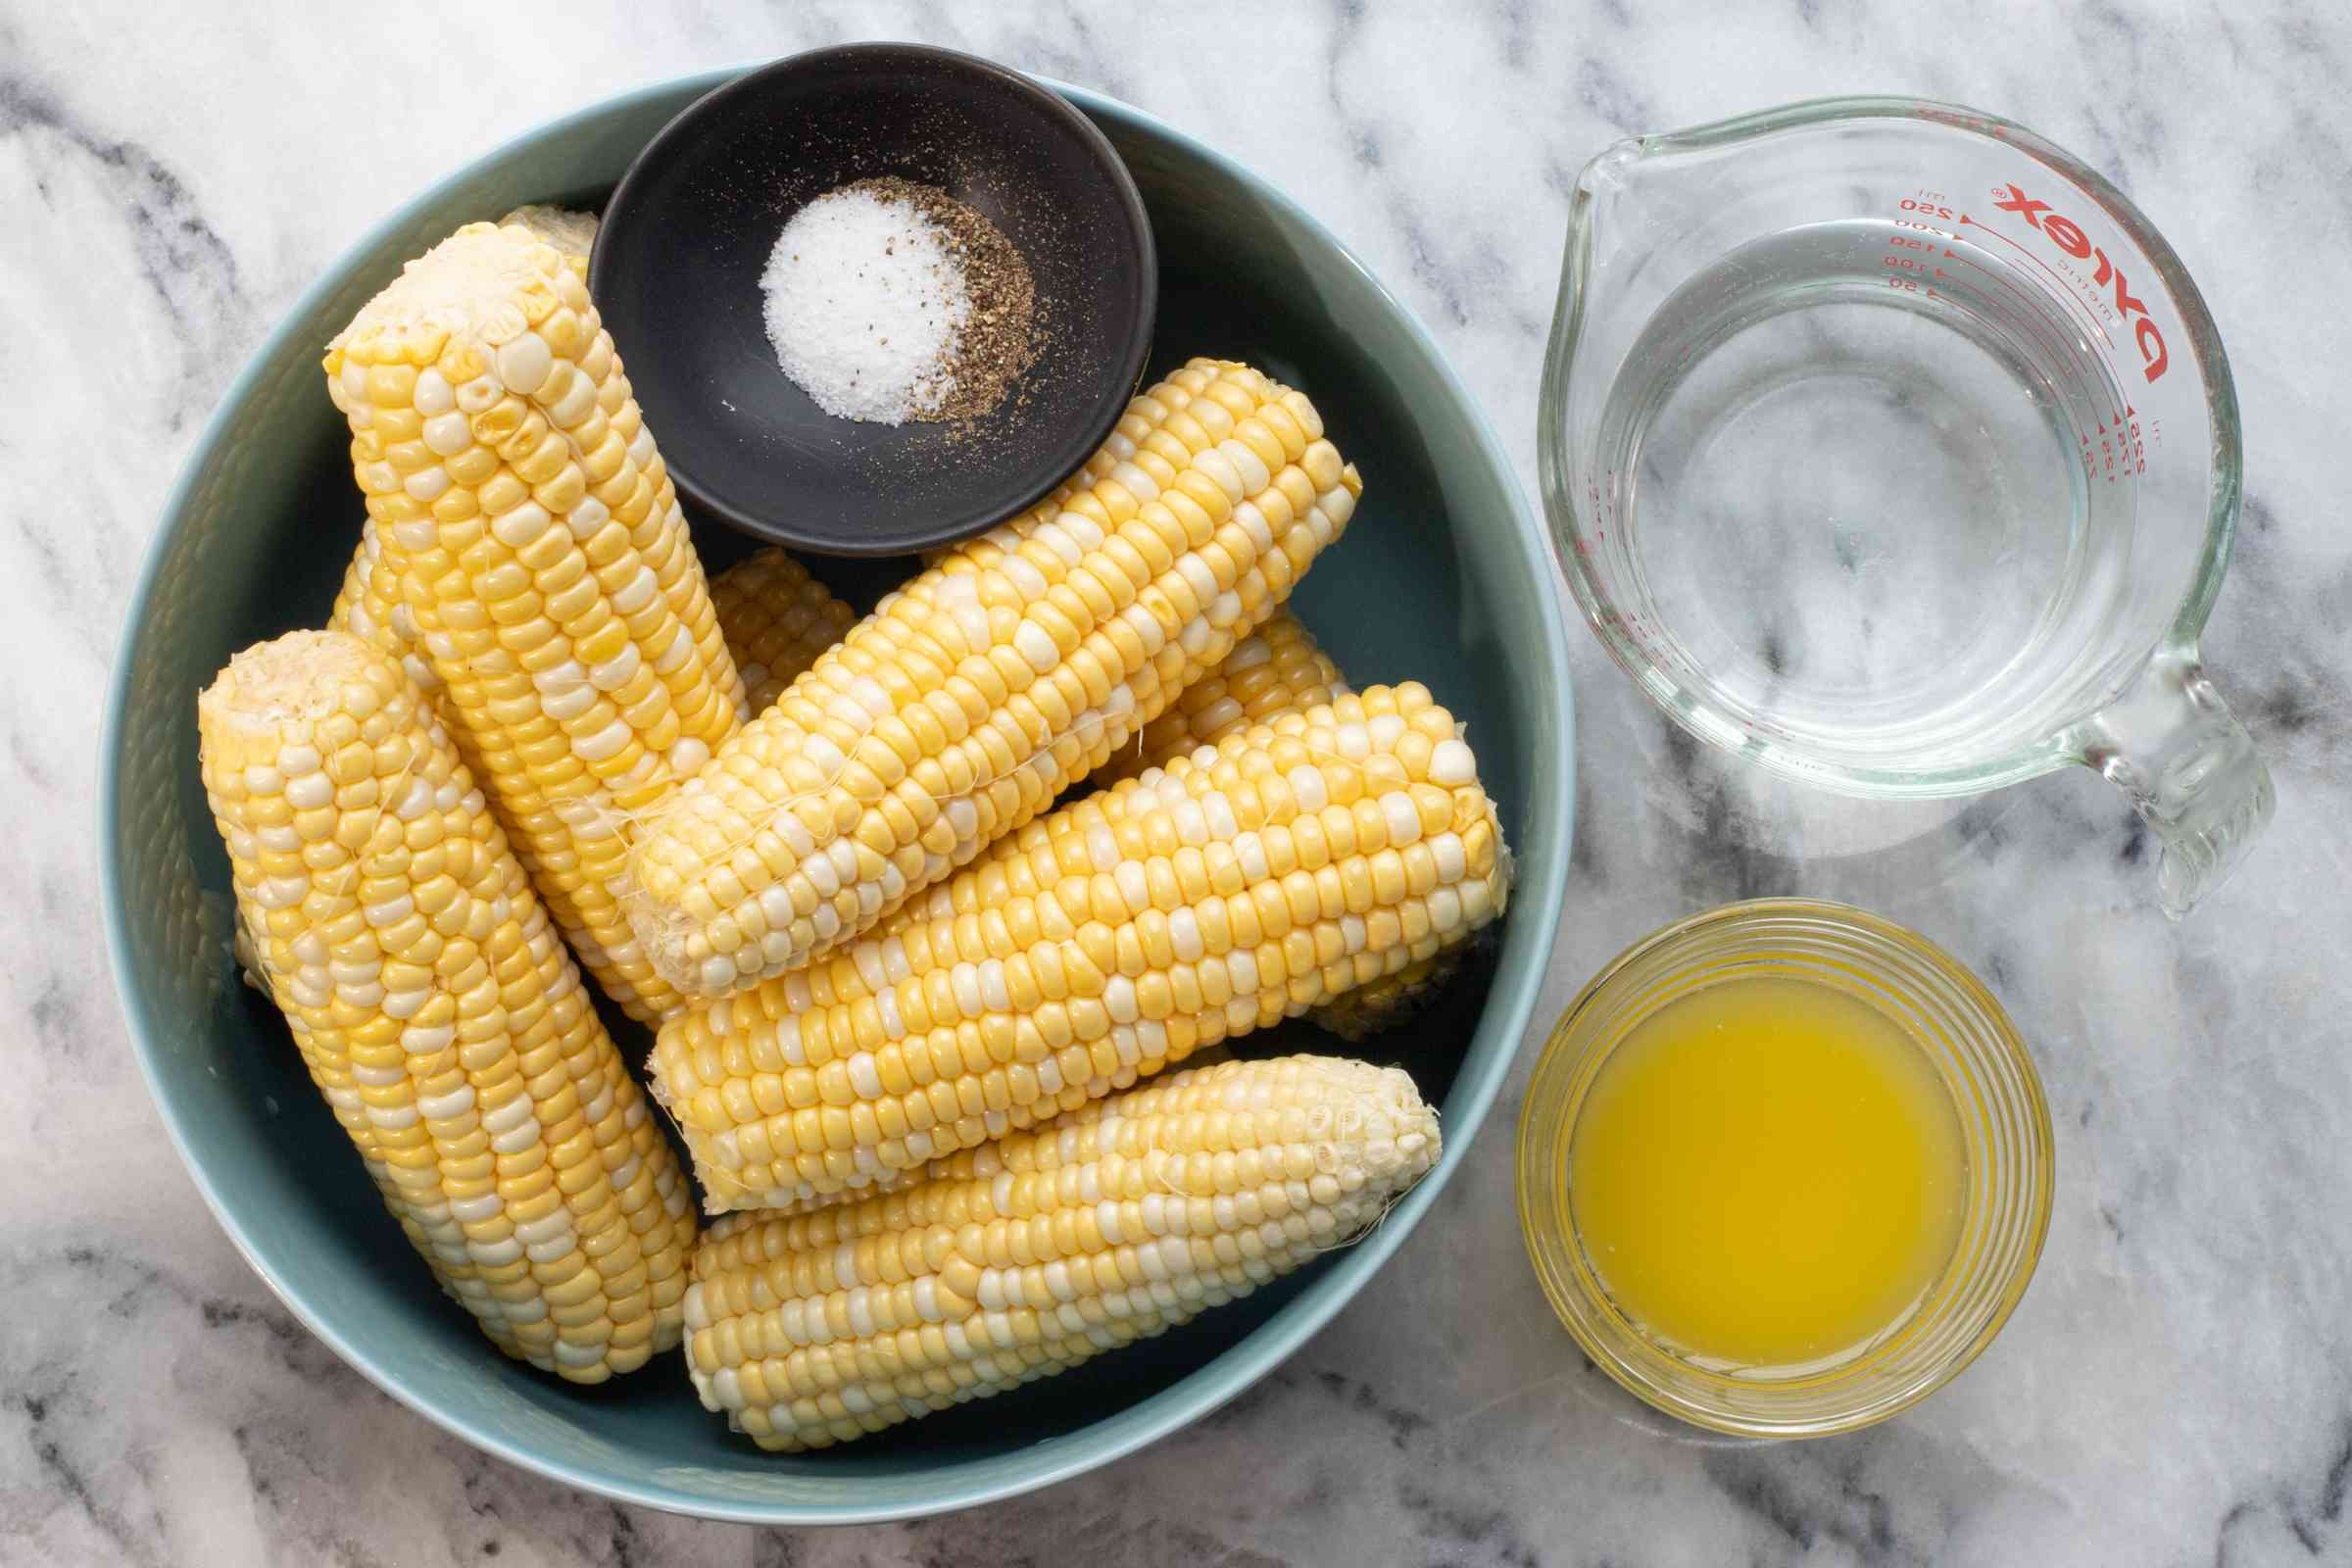 Ingredients for Instant Pot corn on the cob.